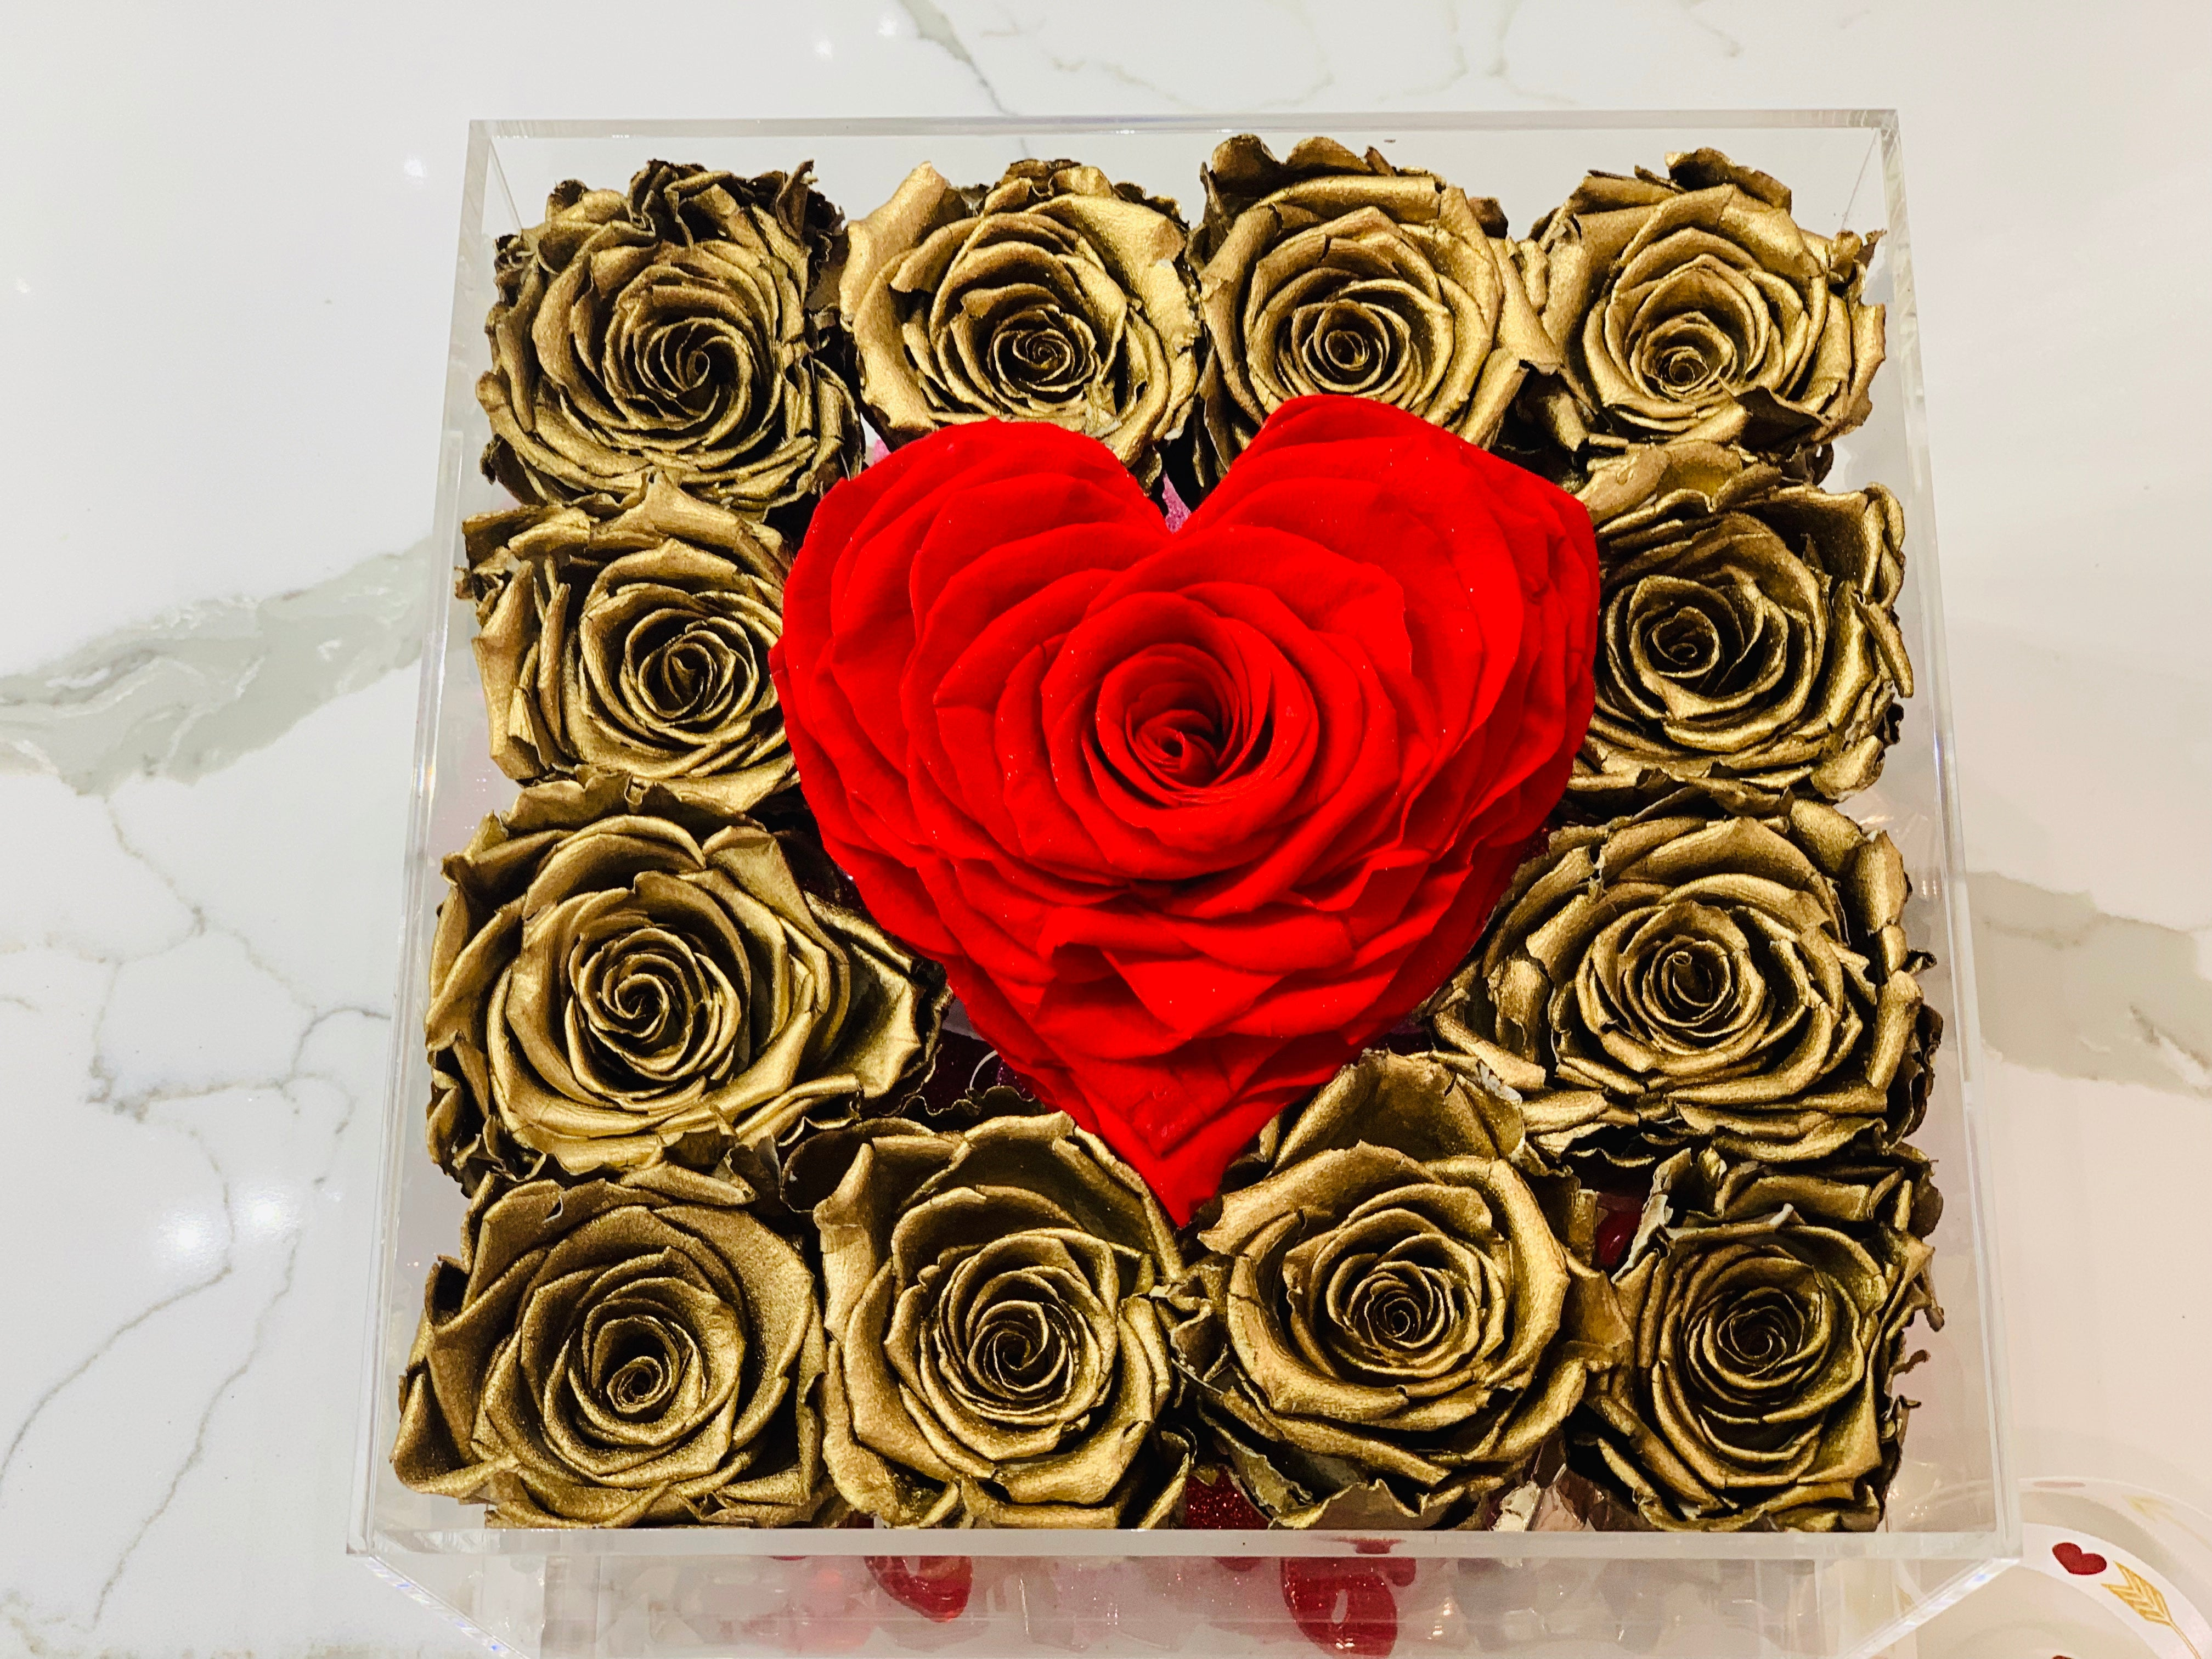 Modern Rose Box with preserved roses that last for years with metallic gold roses and accented with a red petal heart